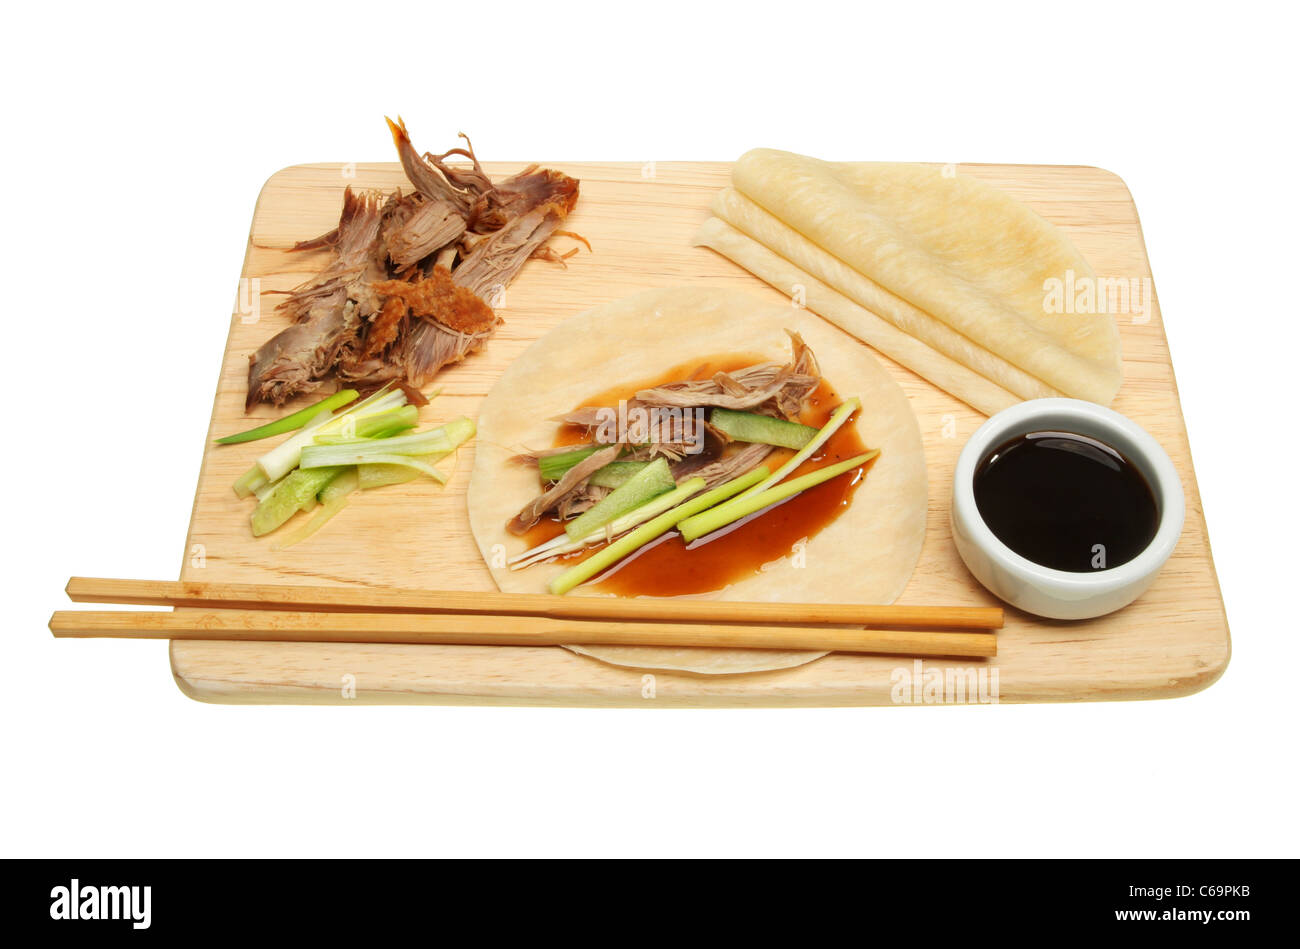 Chinese style crispy duck and pancakes on a board - Stock Image